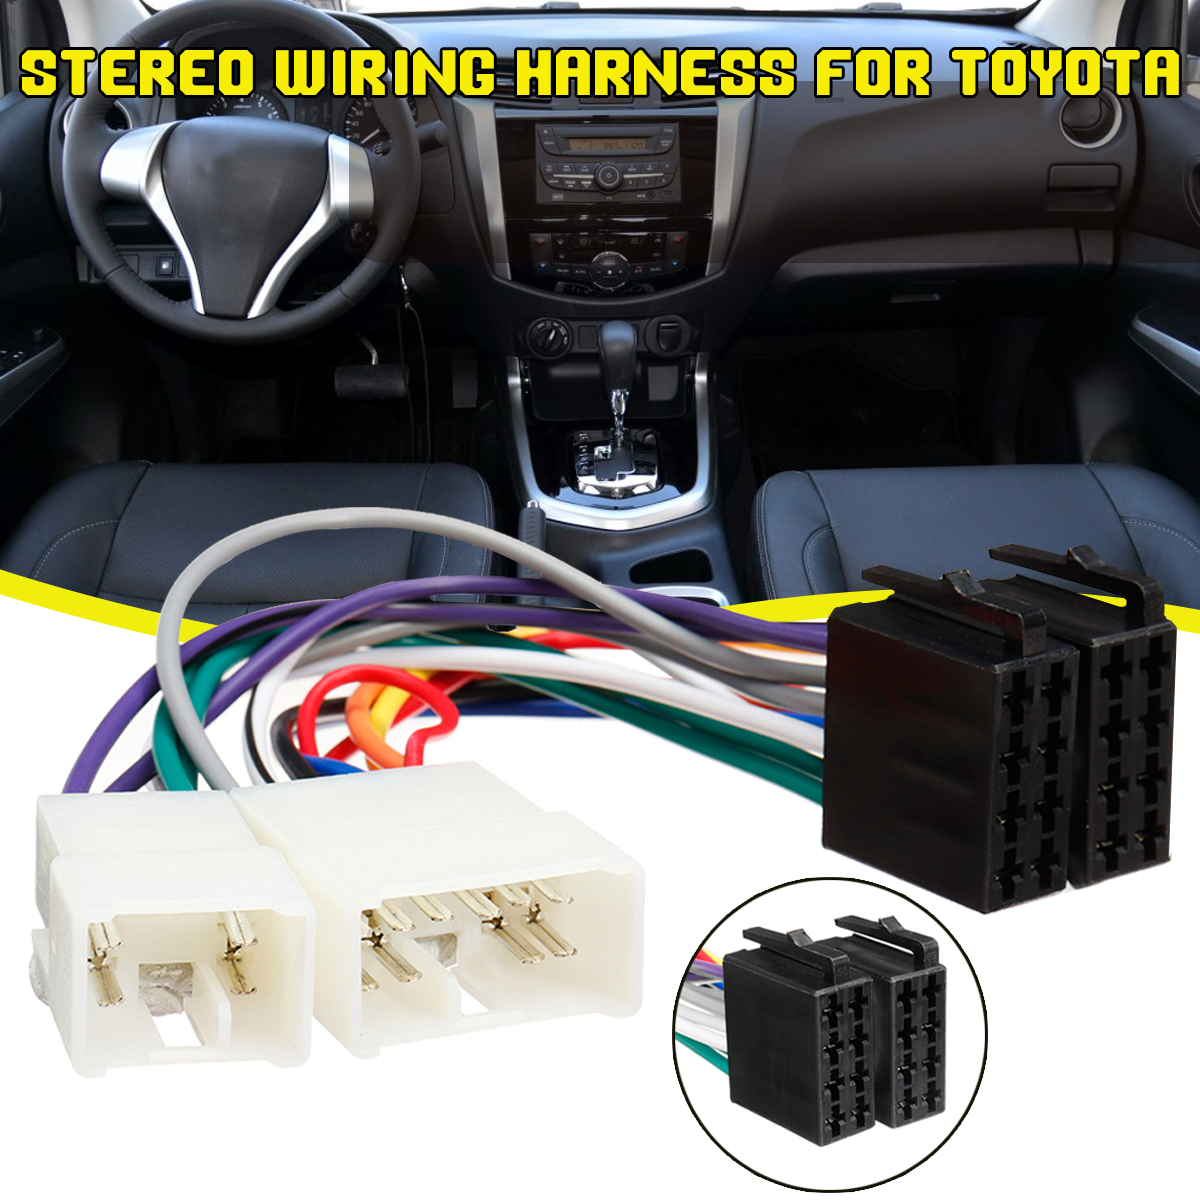 New ISO Wiring Harness Stereo Radio Plug Lead Wire Loom ... Toyota Stereo Wiring Harness Adapter on chevy trailblazer stereo harness adapters, radio harness adapters, car audio harness adapters, car stereo adapters, stereo wiring harness kit, stereo wiring harness color codes,